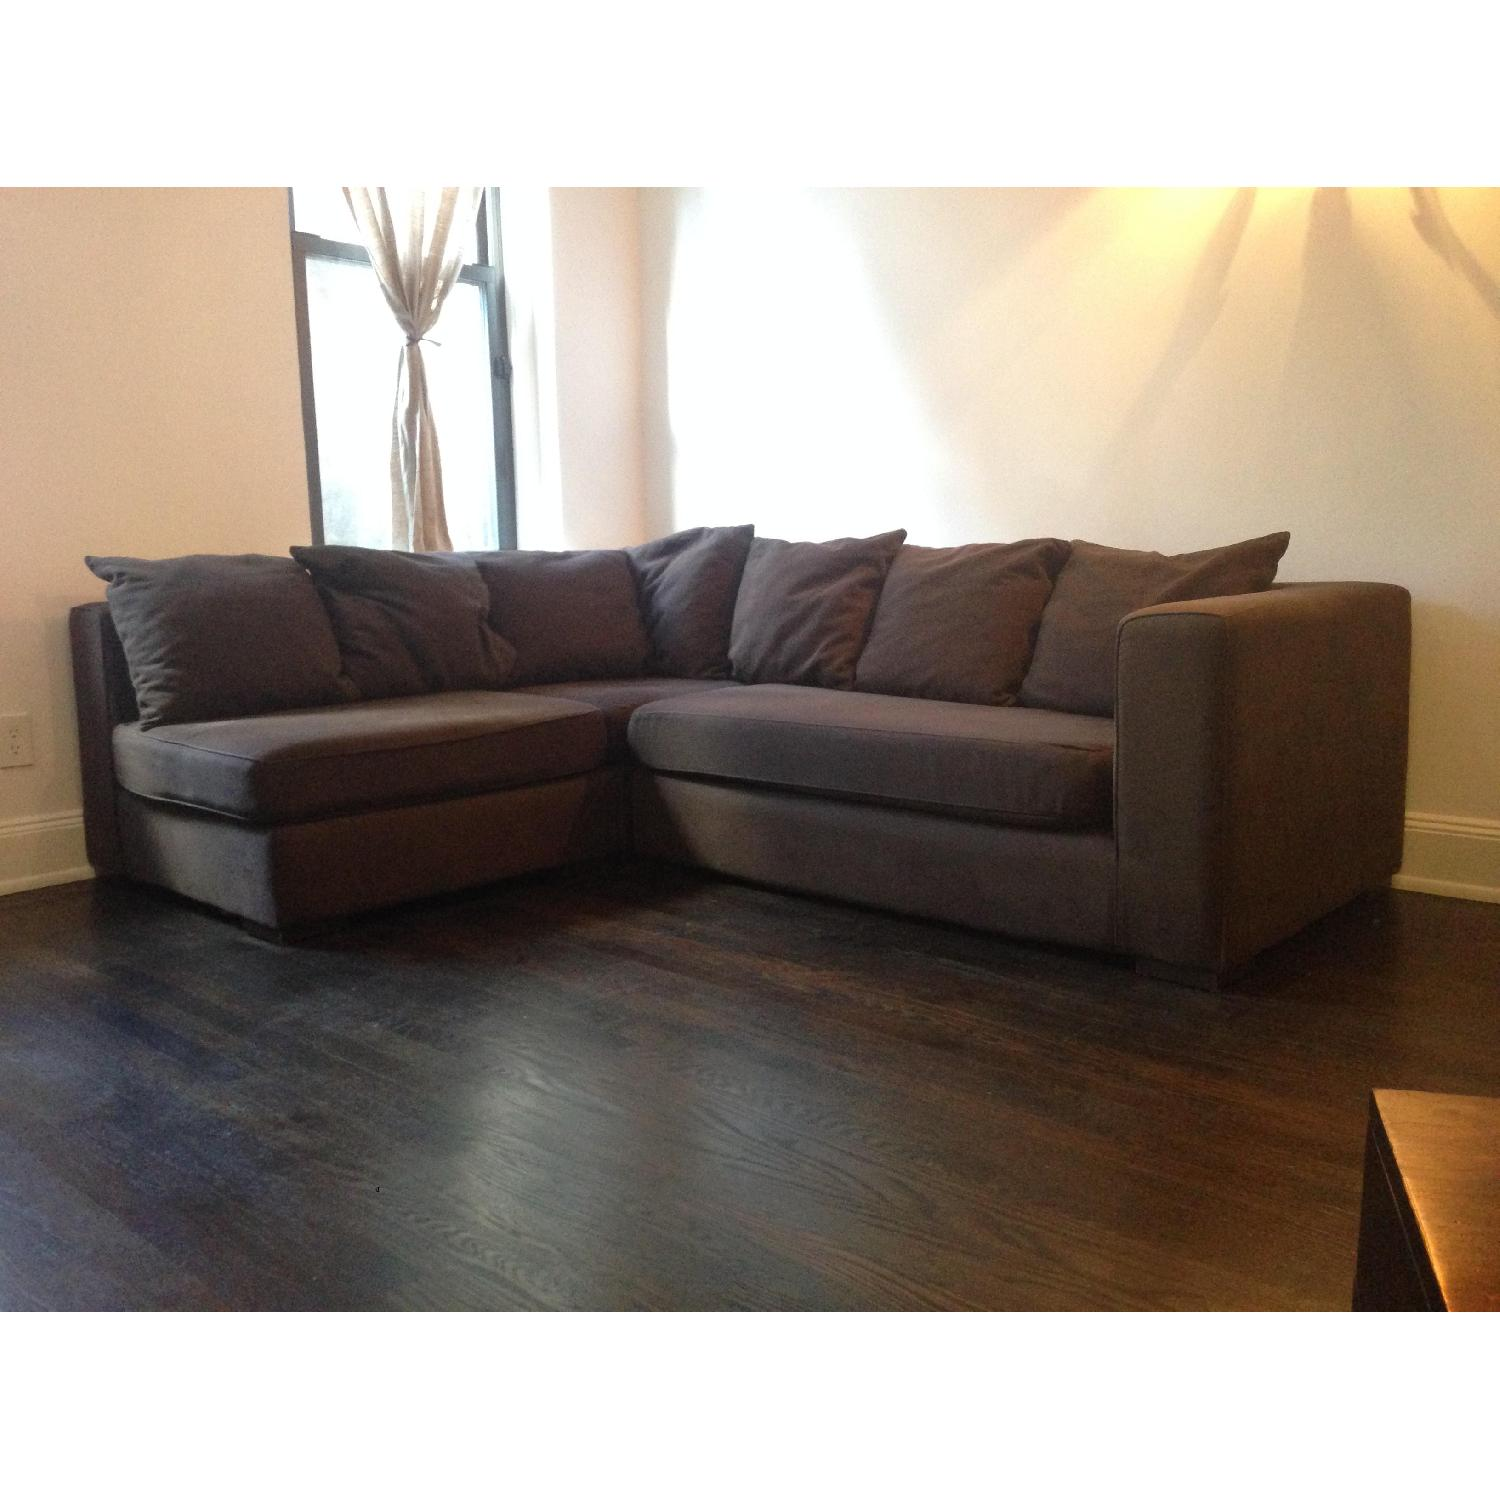 West Elm Walton 3 Piece Sectional Sofa in Brown - image-1